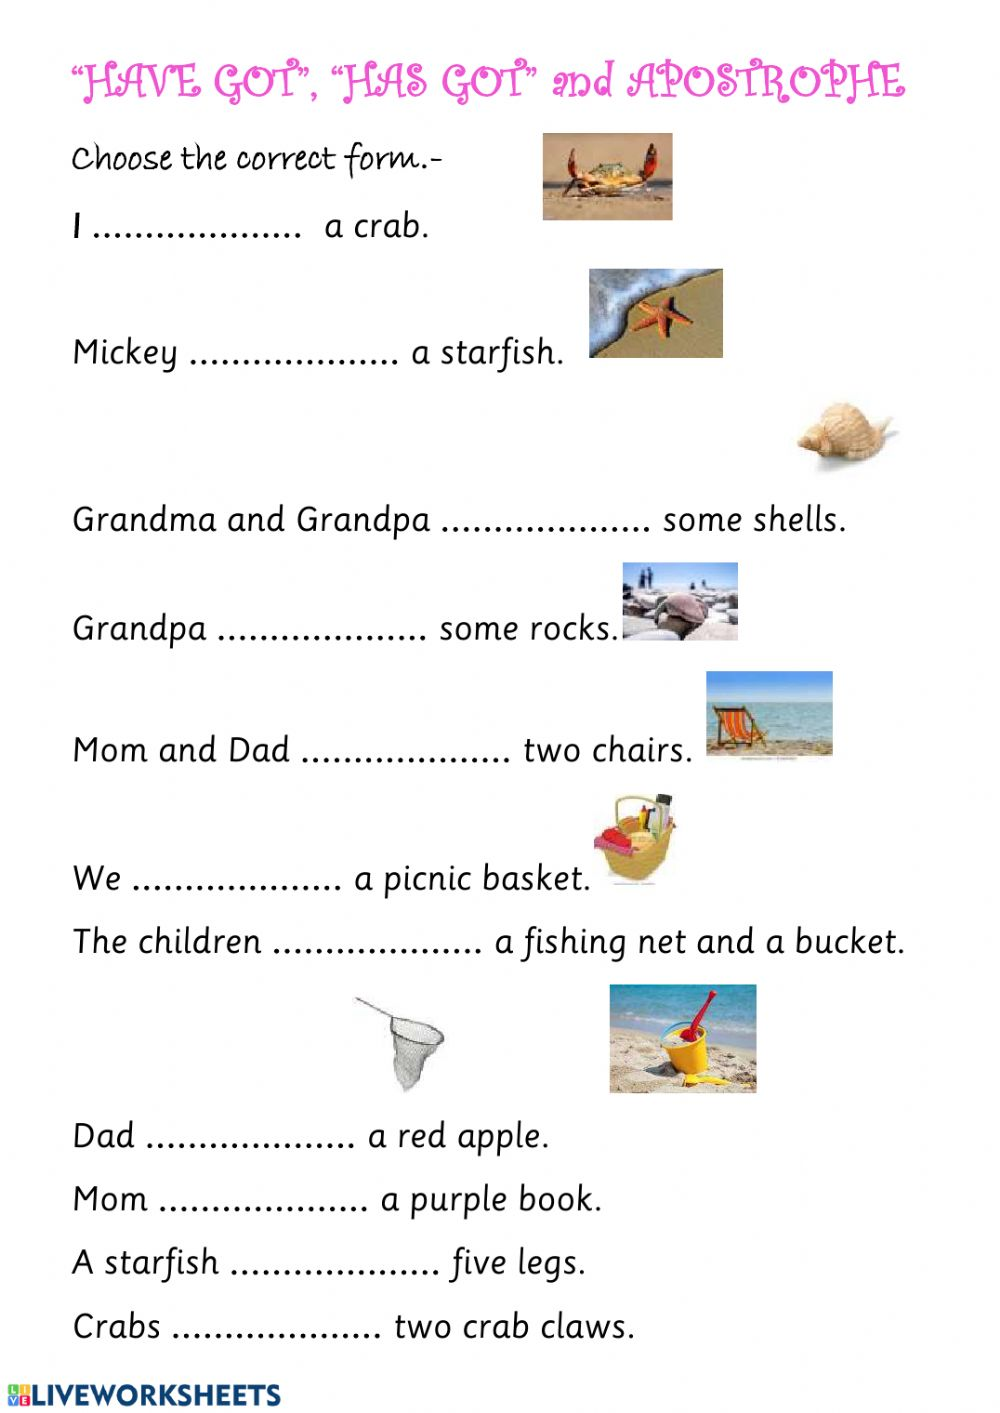 hight resolution of HAVE GOT and APOSTROPHES worksheet